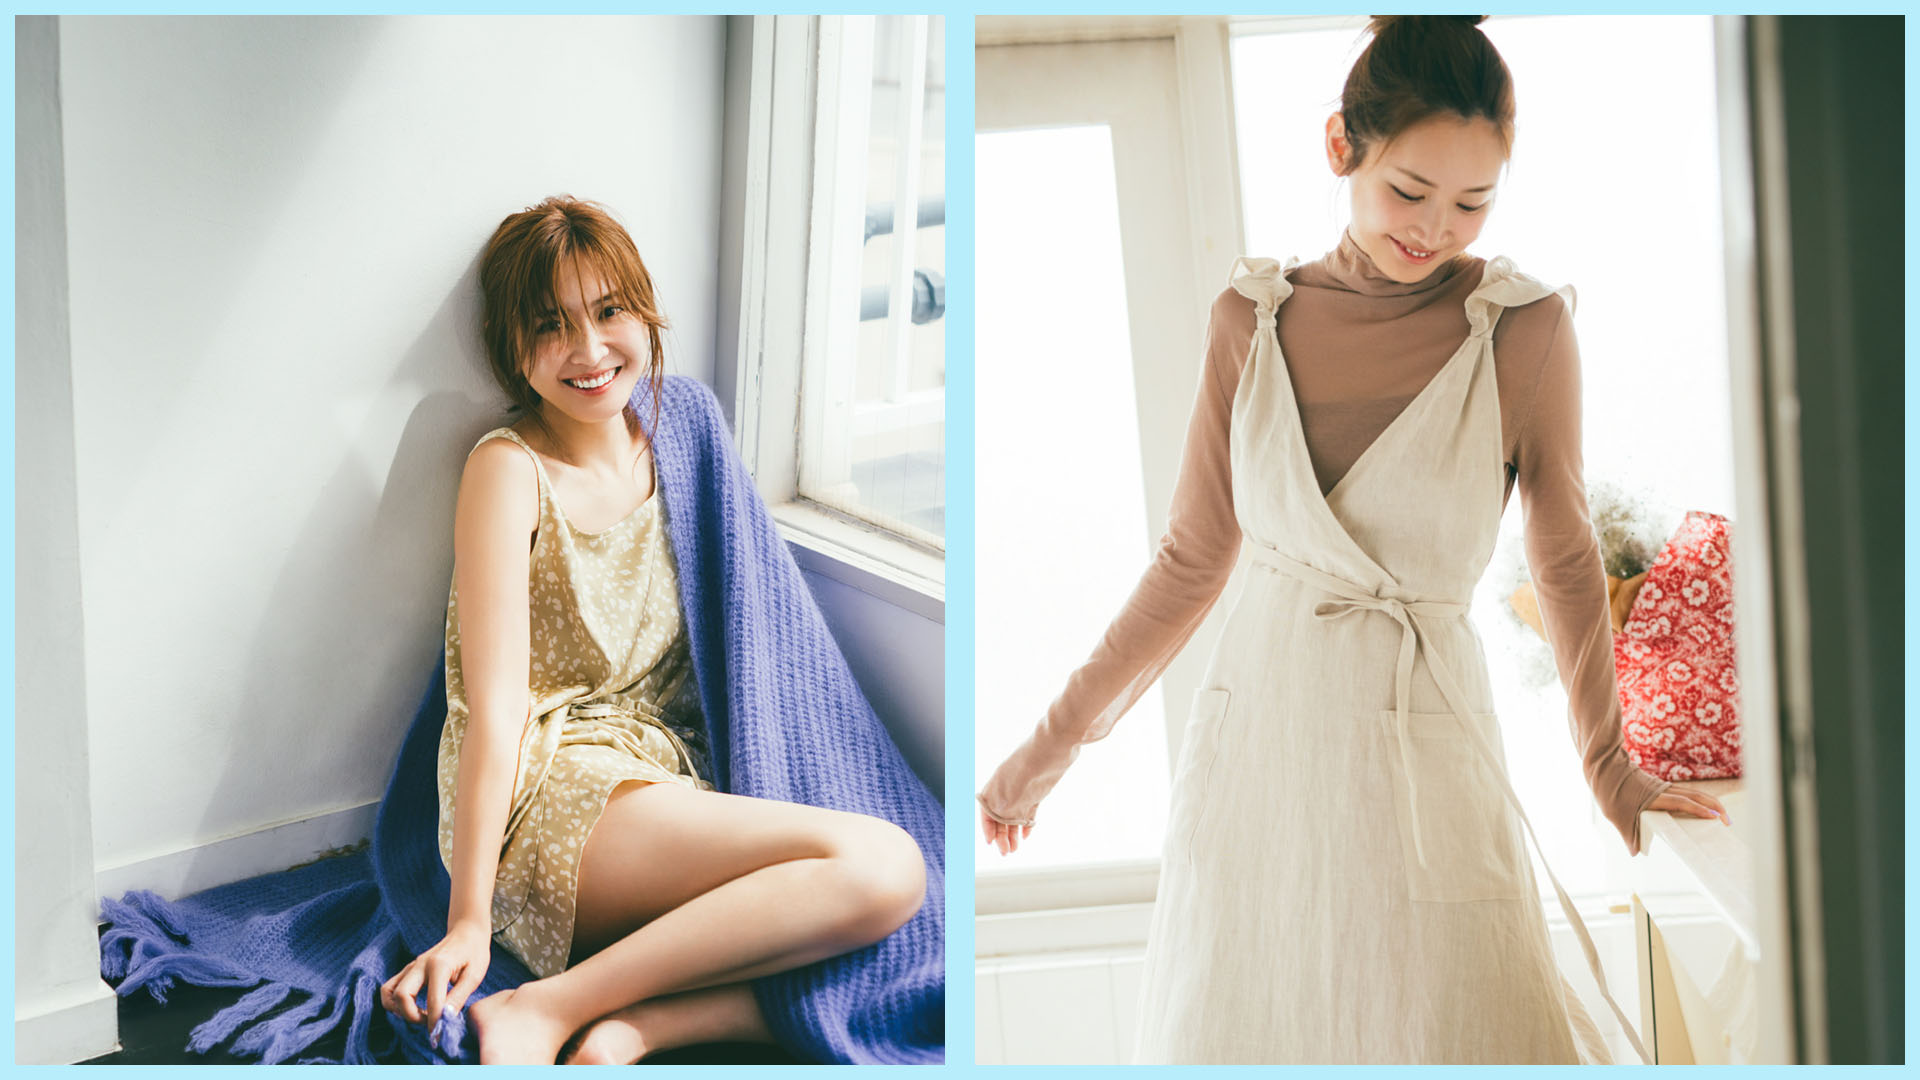 〈SNIDEL×紗栄子〉新コレクション「ONE MILE DRESS Capsule Collection with Saeko」